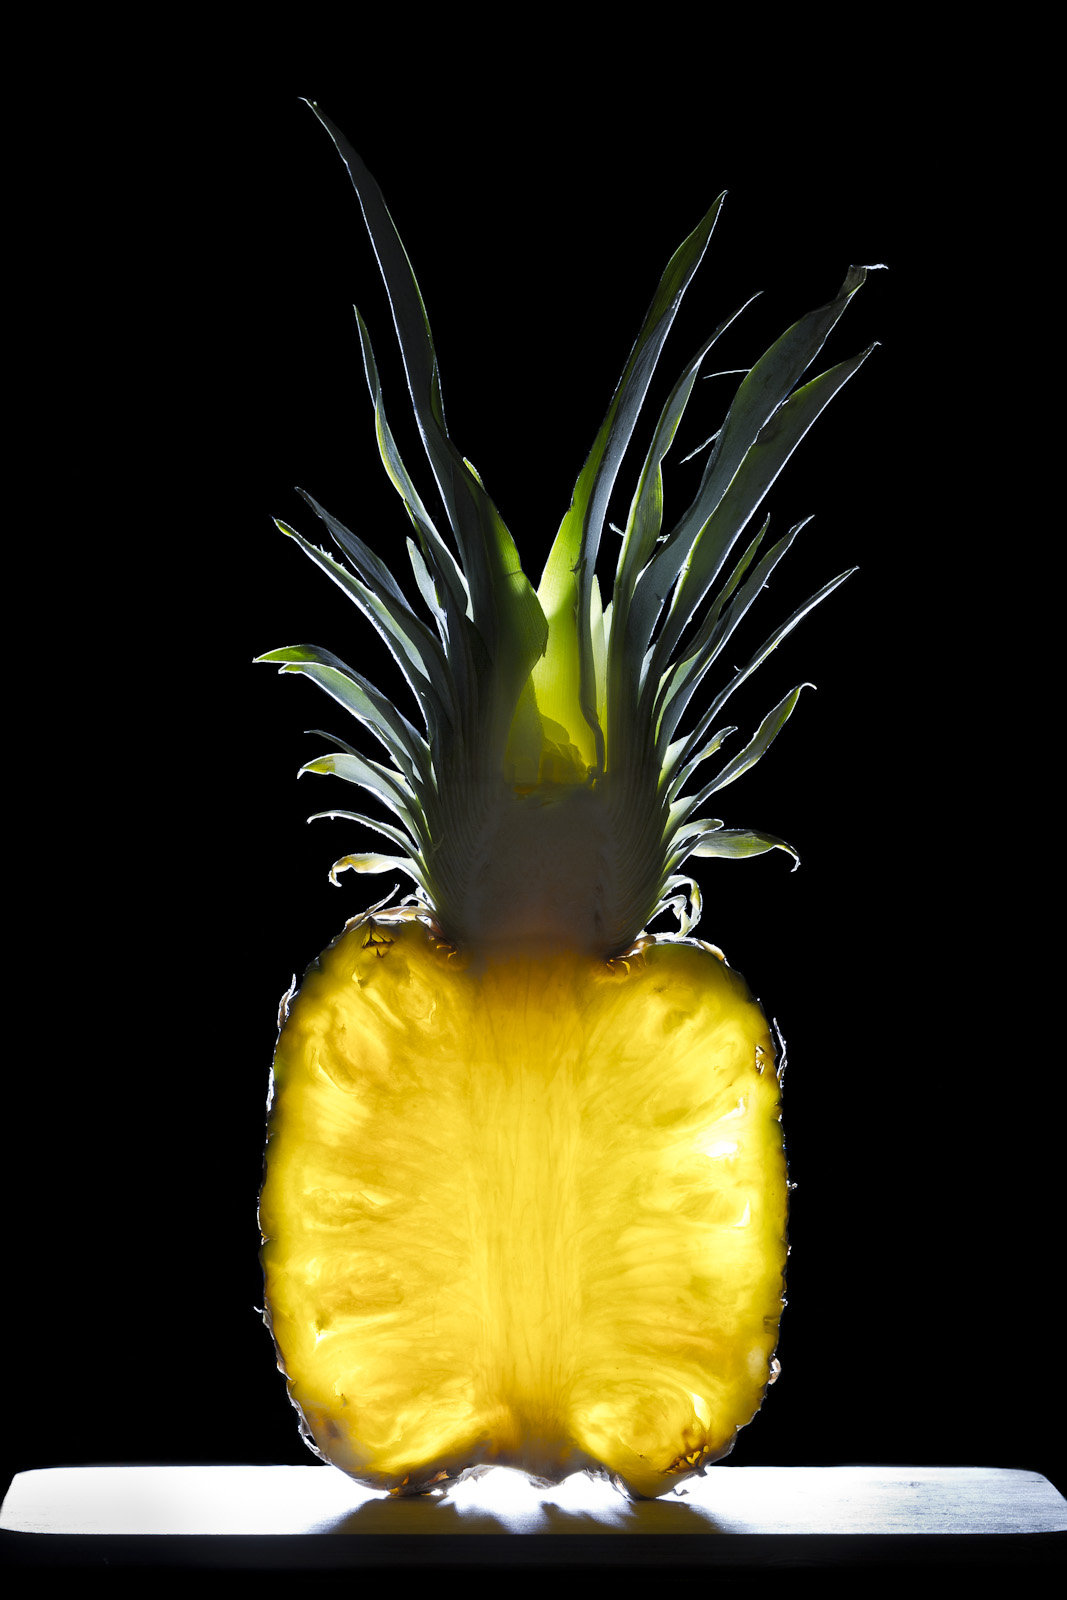 Pineapplight